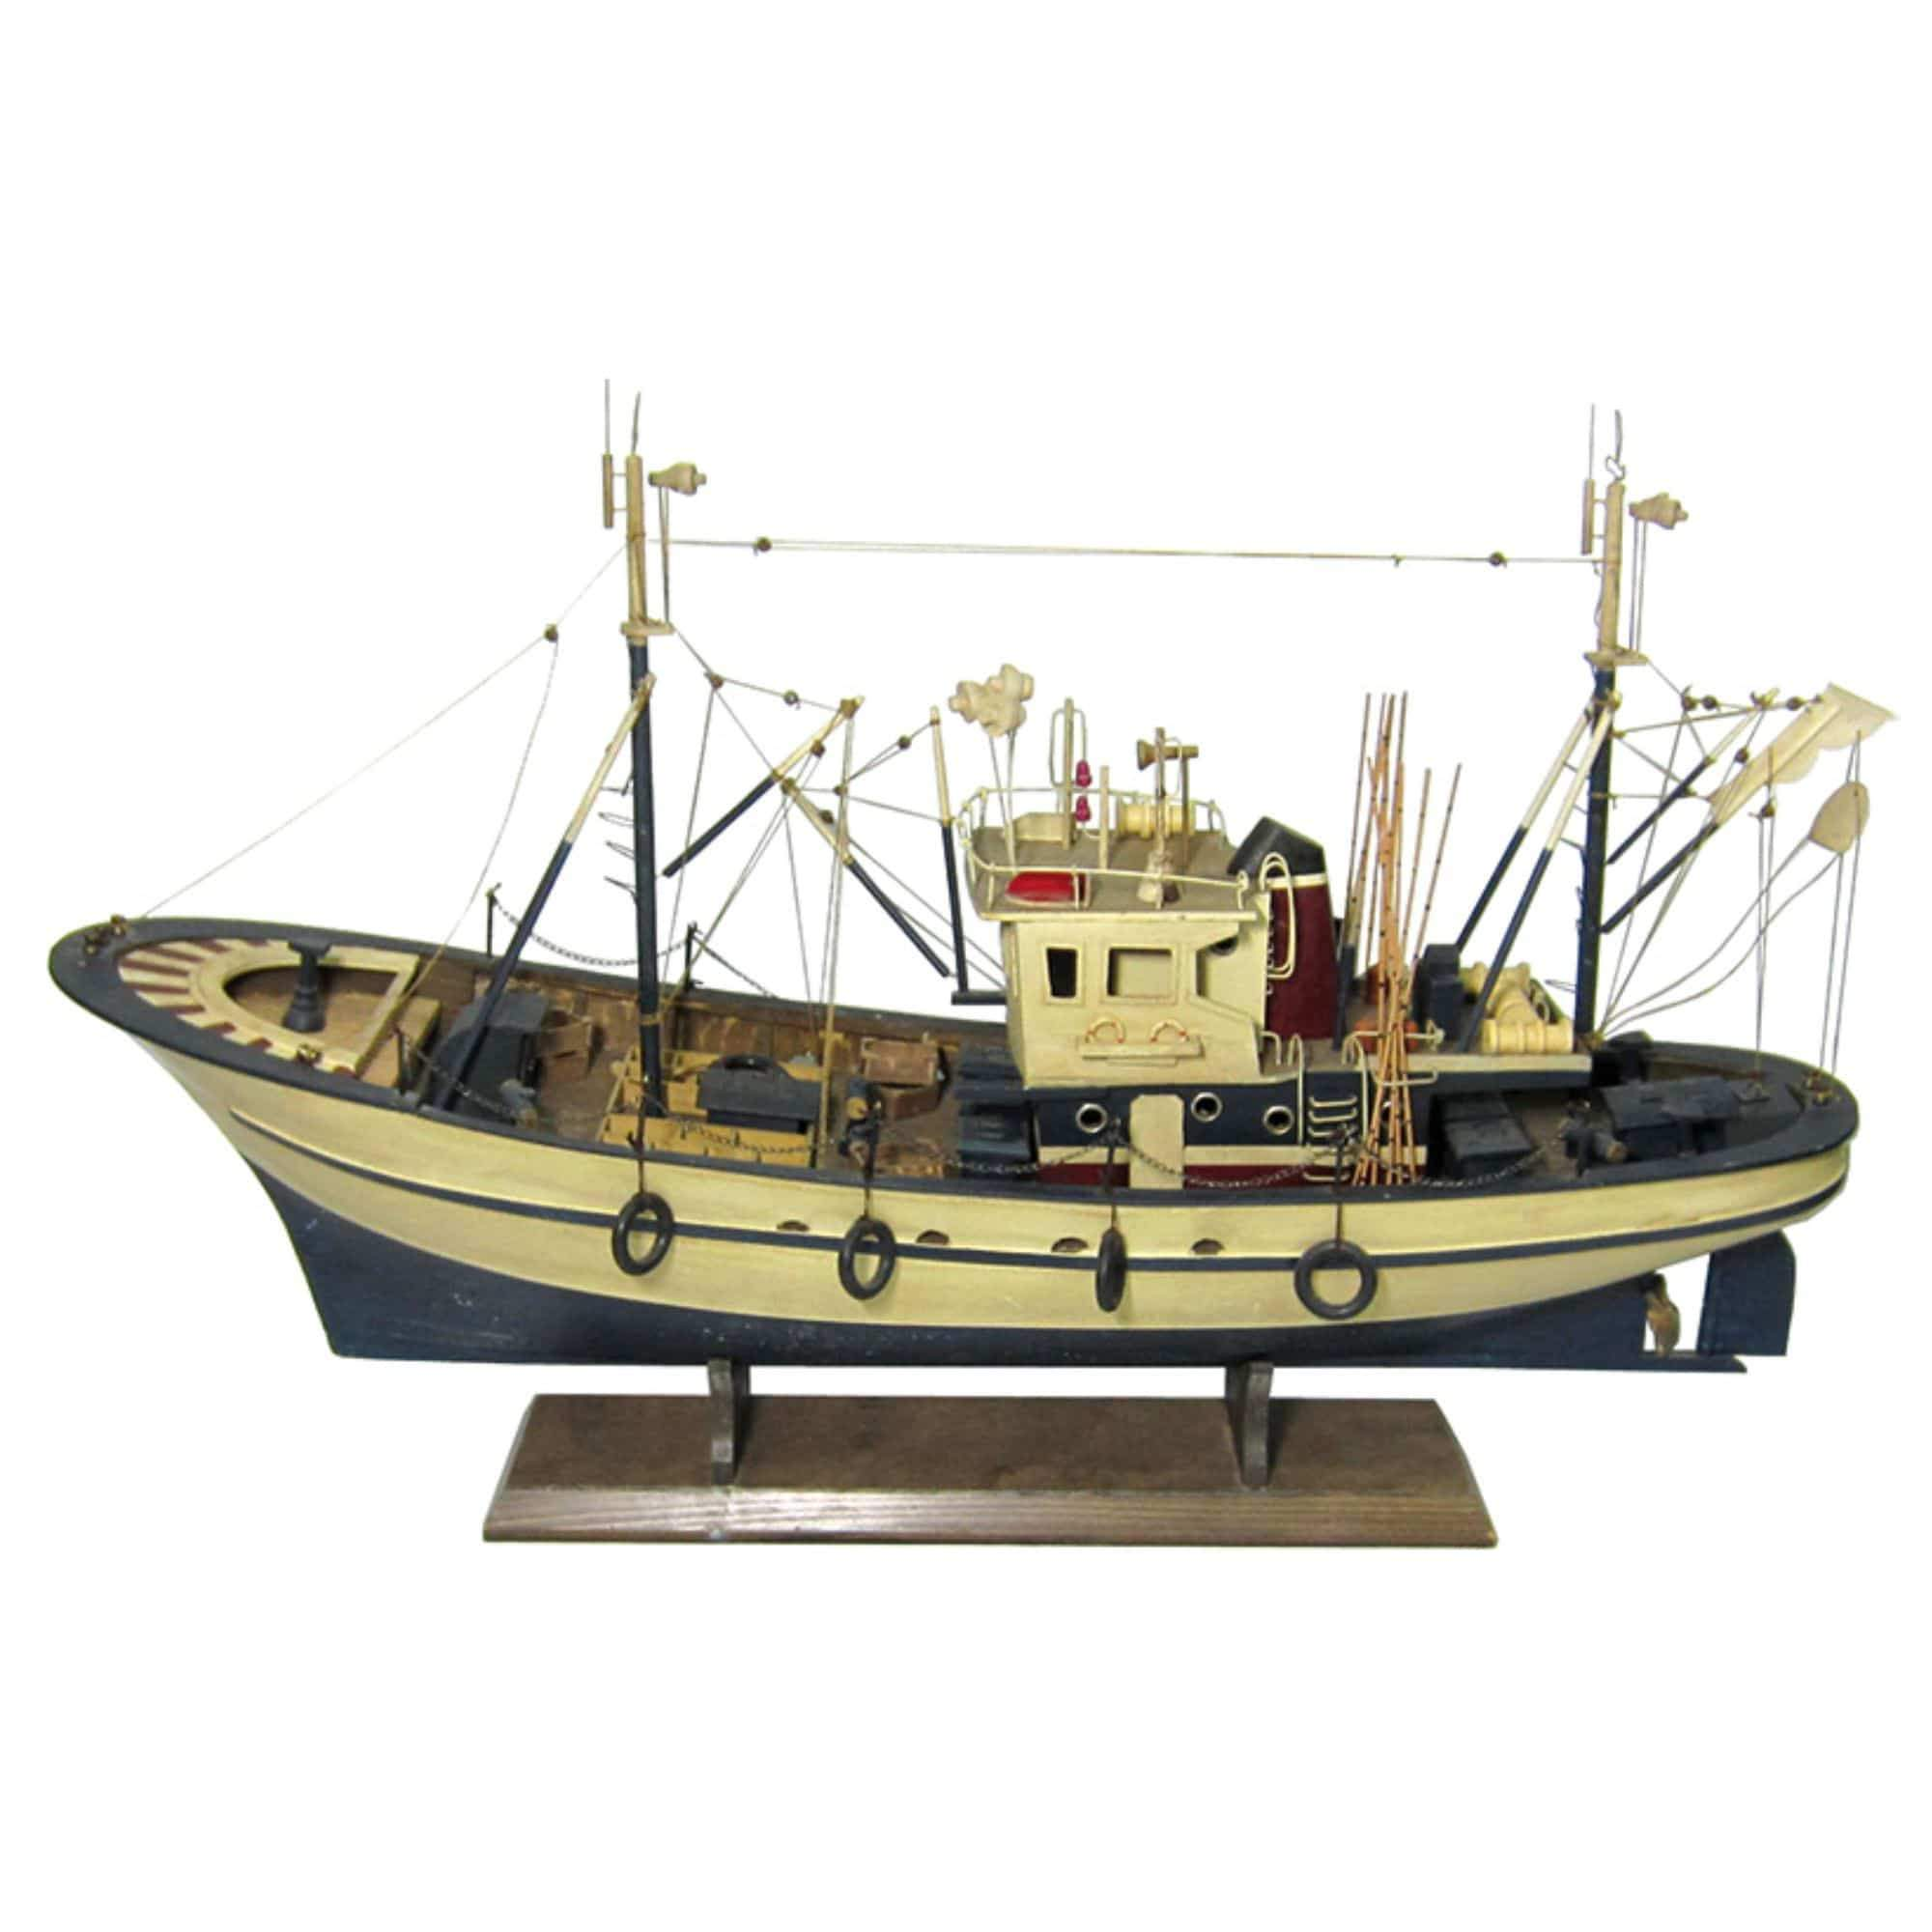 Batela Giftware-Fishing Boats-Fishing Boat, Blue and Cream - Model Boat